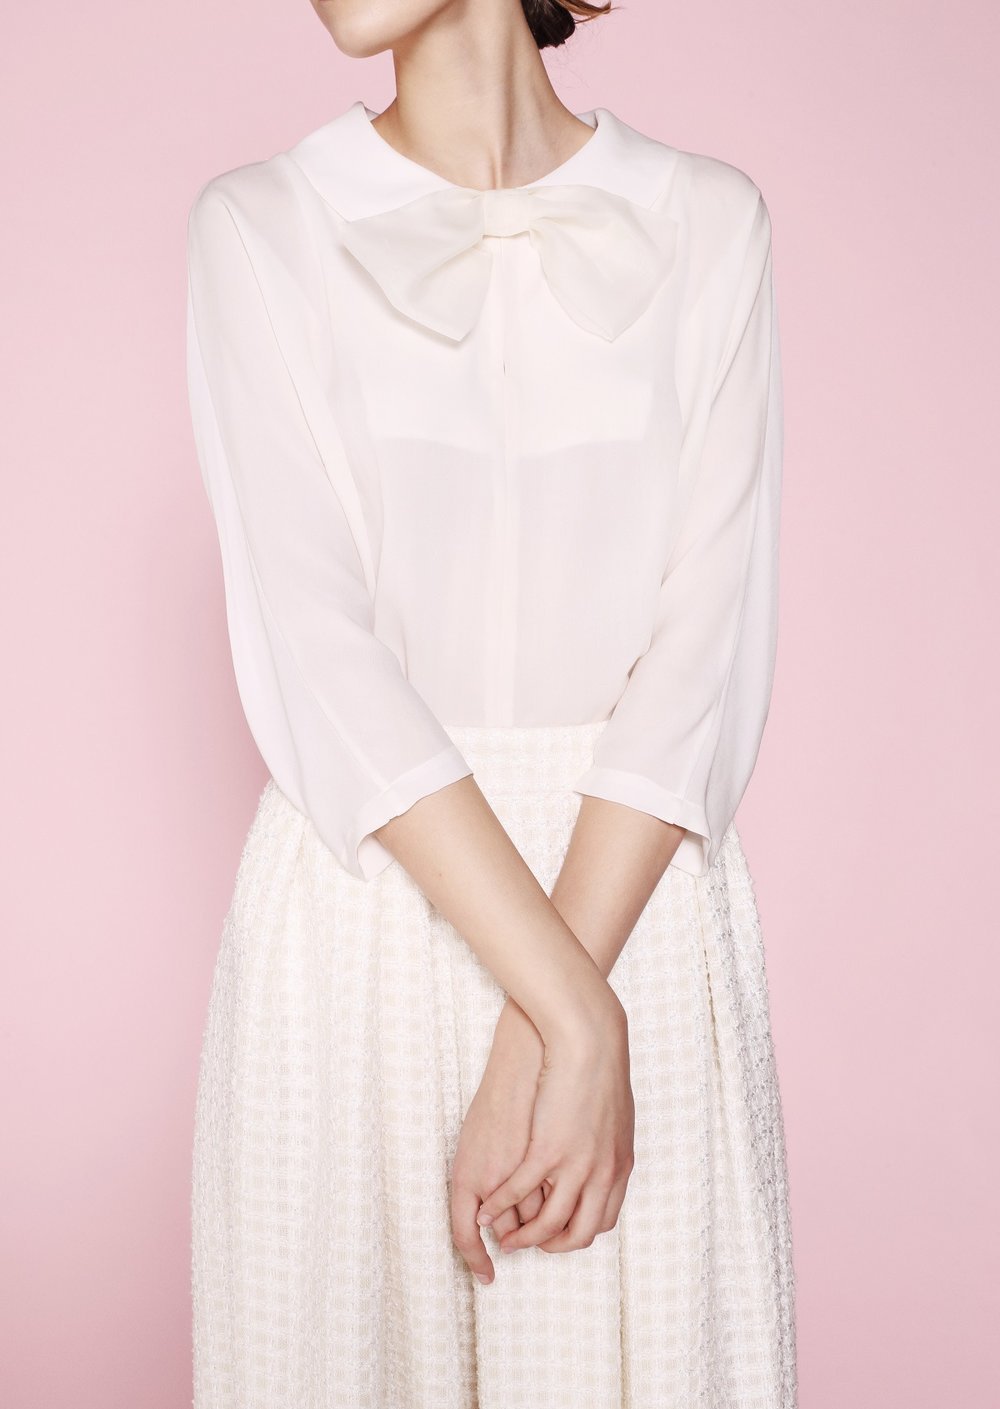 2. The Bow Blouse - The Eden blouse features darts on the back of the sleeves, the bib can be opened and organza bow can be worn only on one side if you want to achieve more relaxed look.Delicate, lightweight and classic, this silk blouse is a must in the new season. Wear it with pant suit to office. Or elevate your jeans look and take it to ladylike height with this organza bow.#chic #sophistication